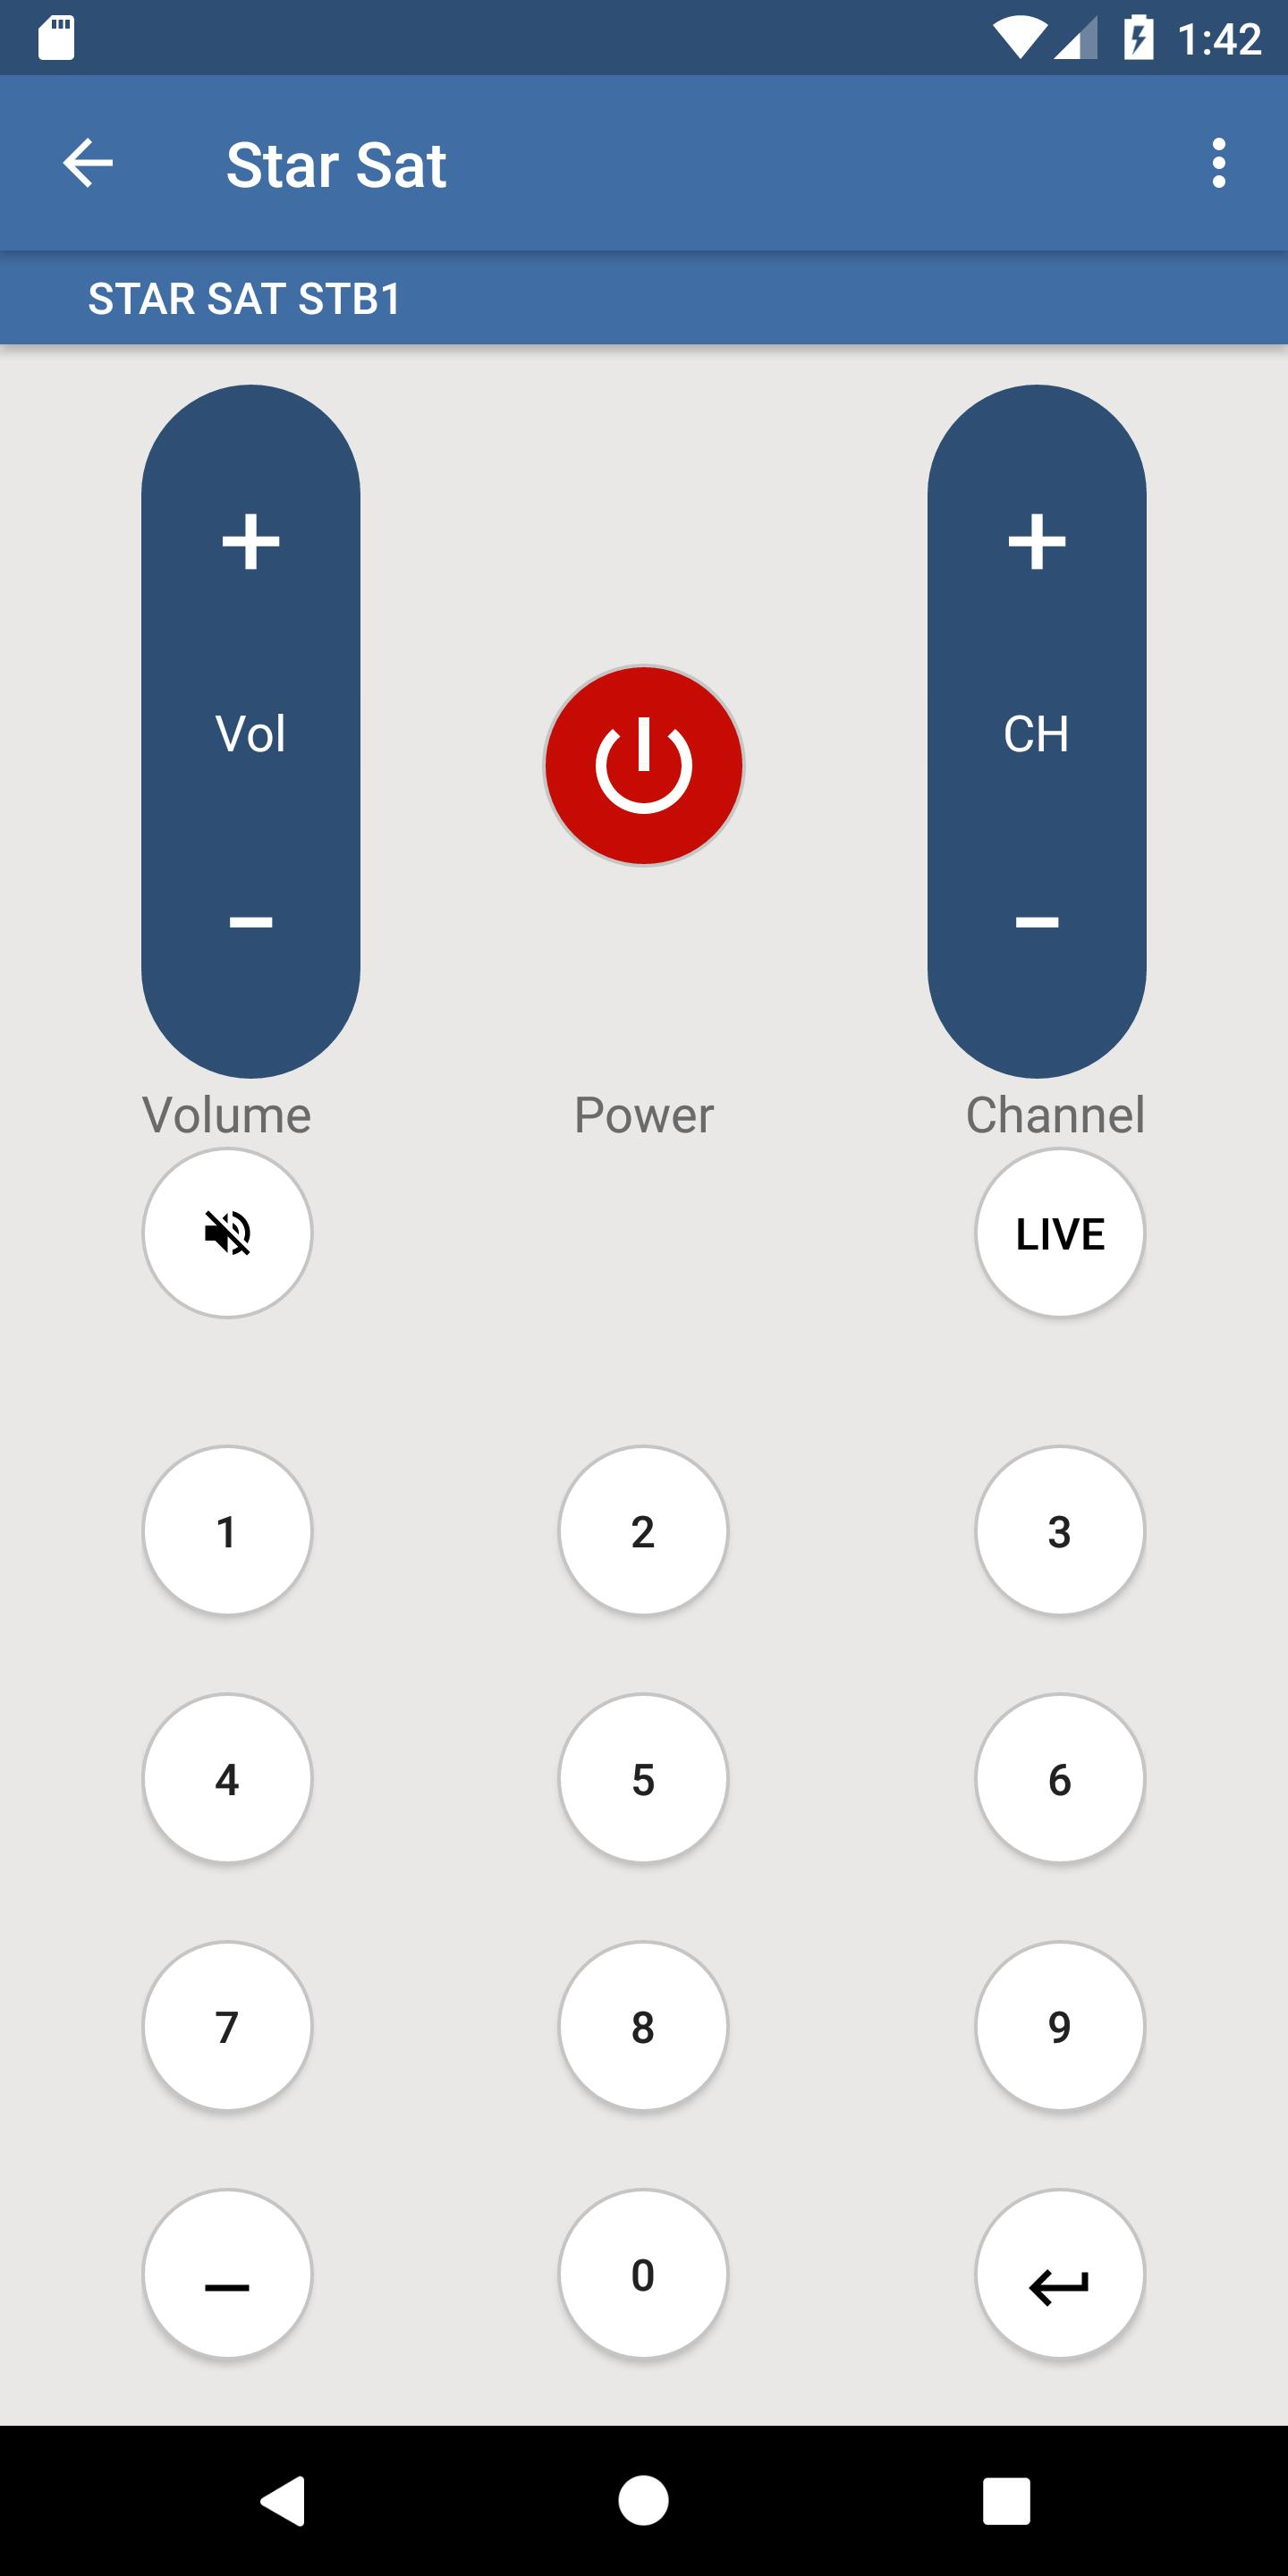 Starsat Remote Control for Android - APK Download